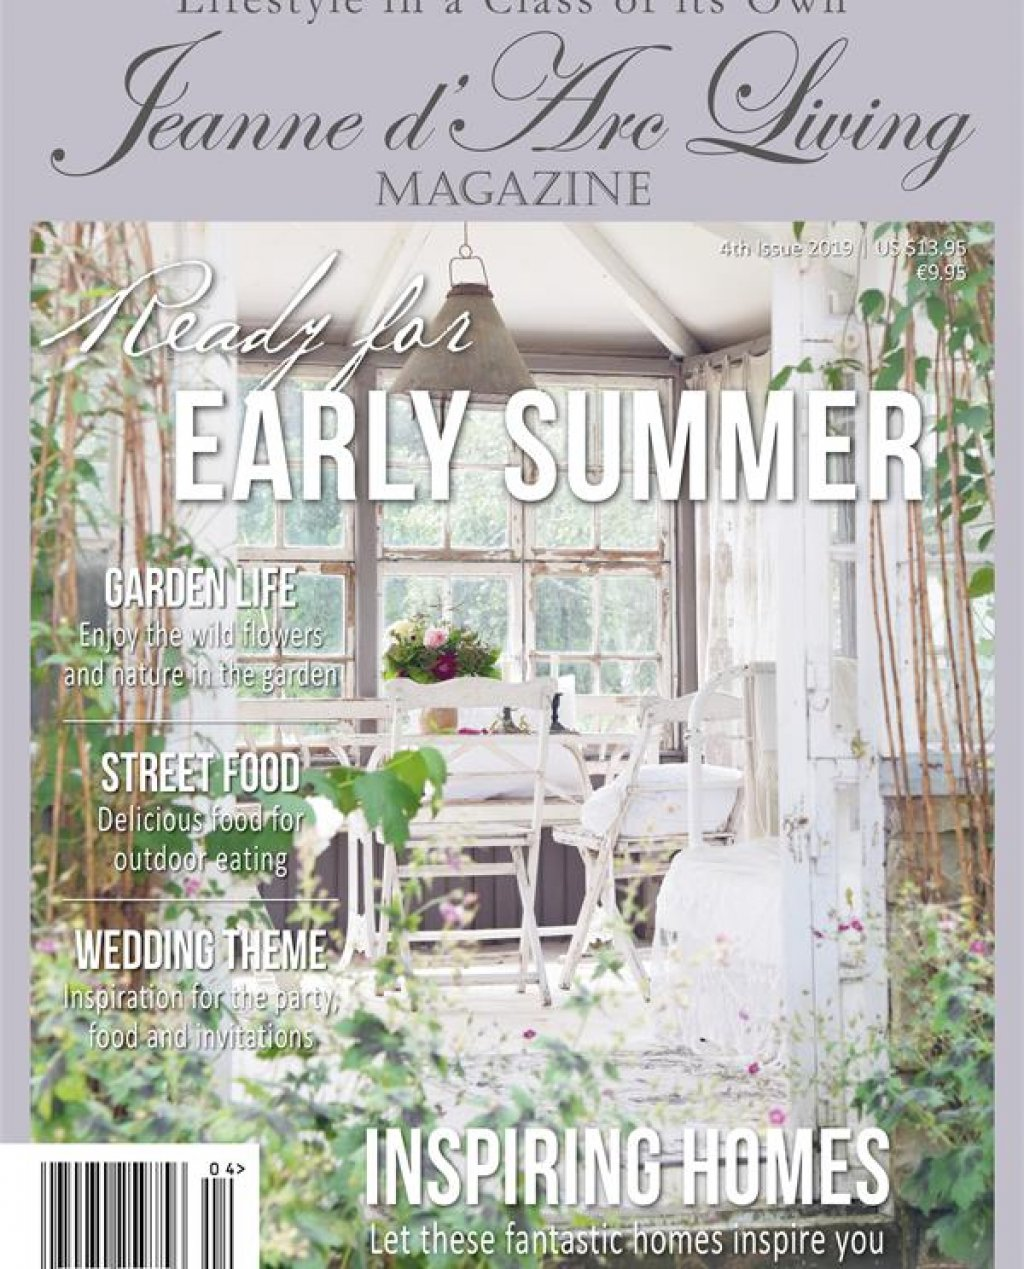 Jeanne d'Arc Living Magazine | Issue 4| 2019